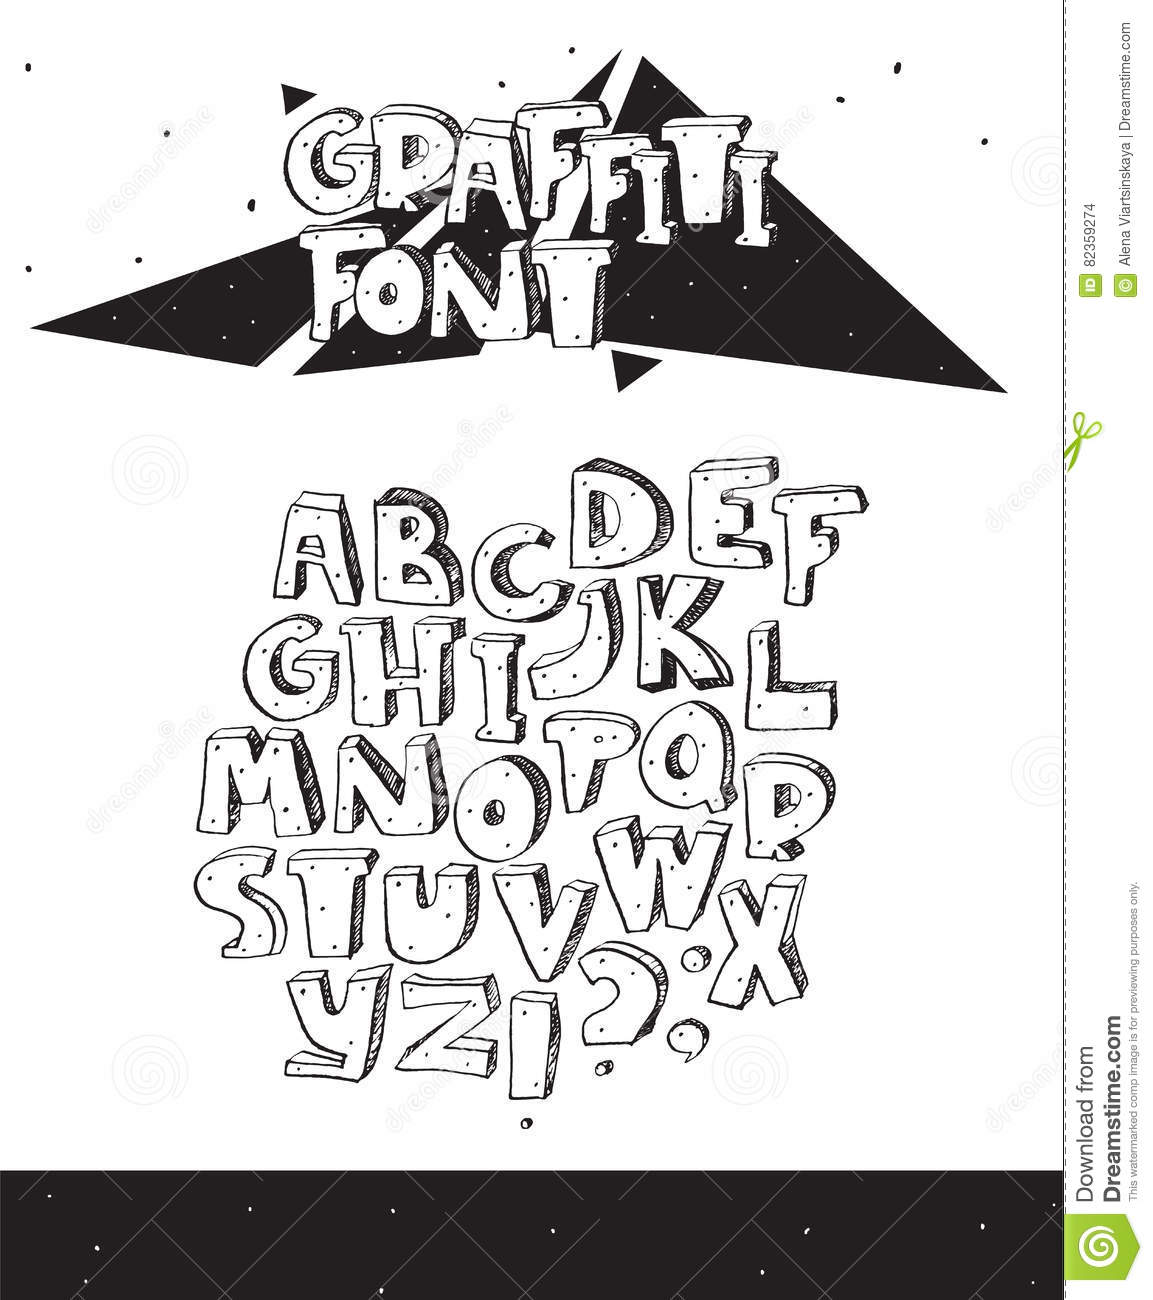 Vector Hand Drawn Illustration With Black And White Imperfect